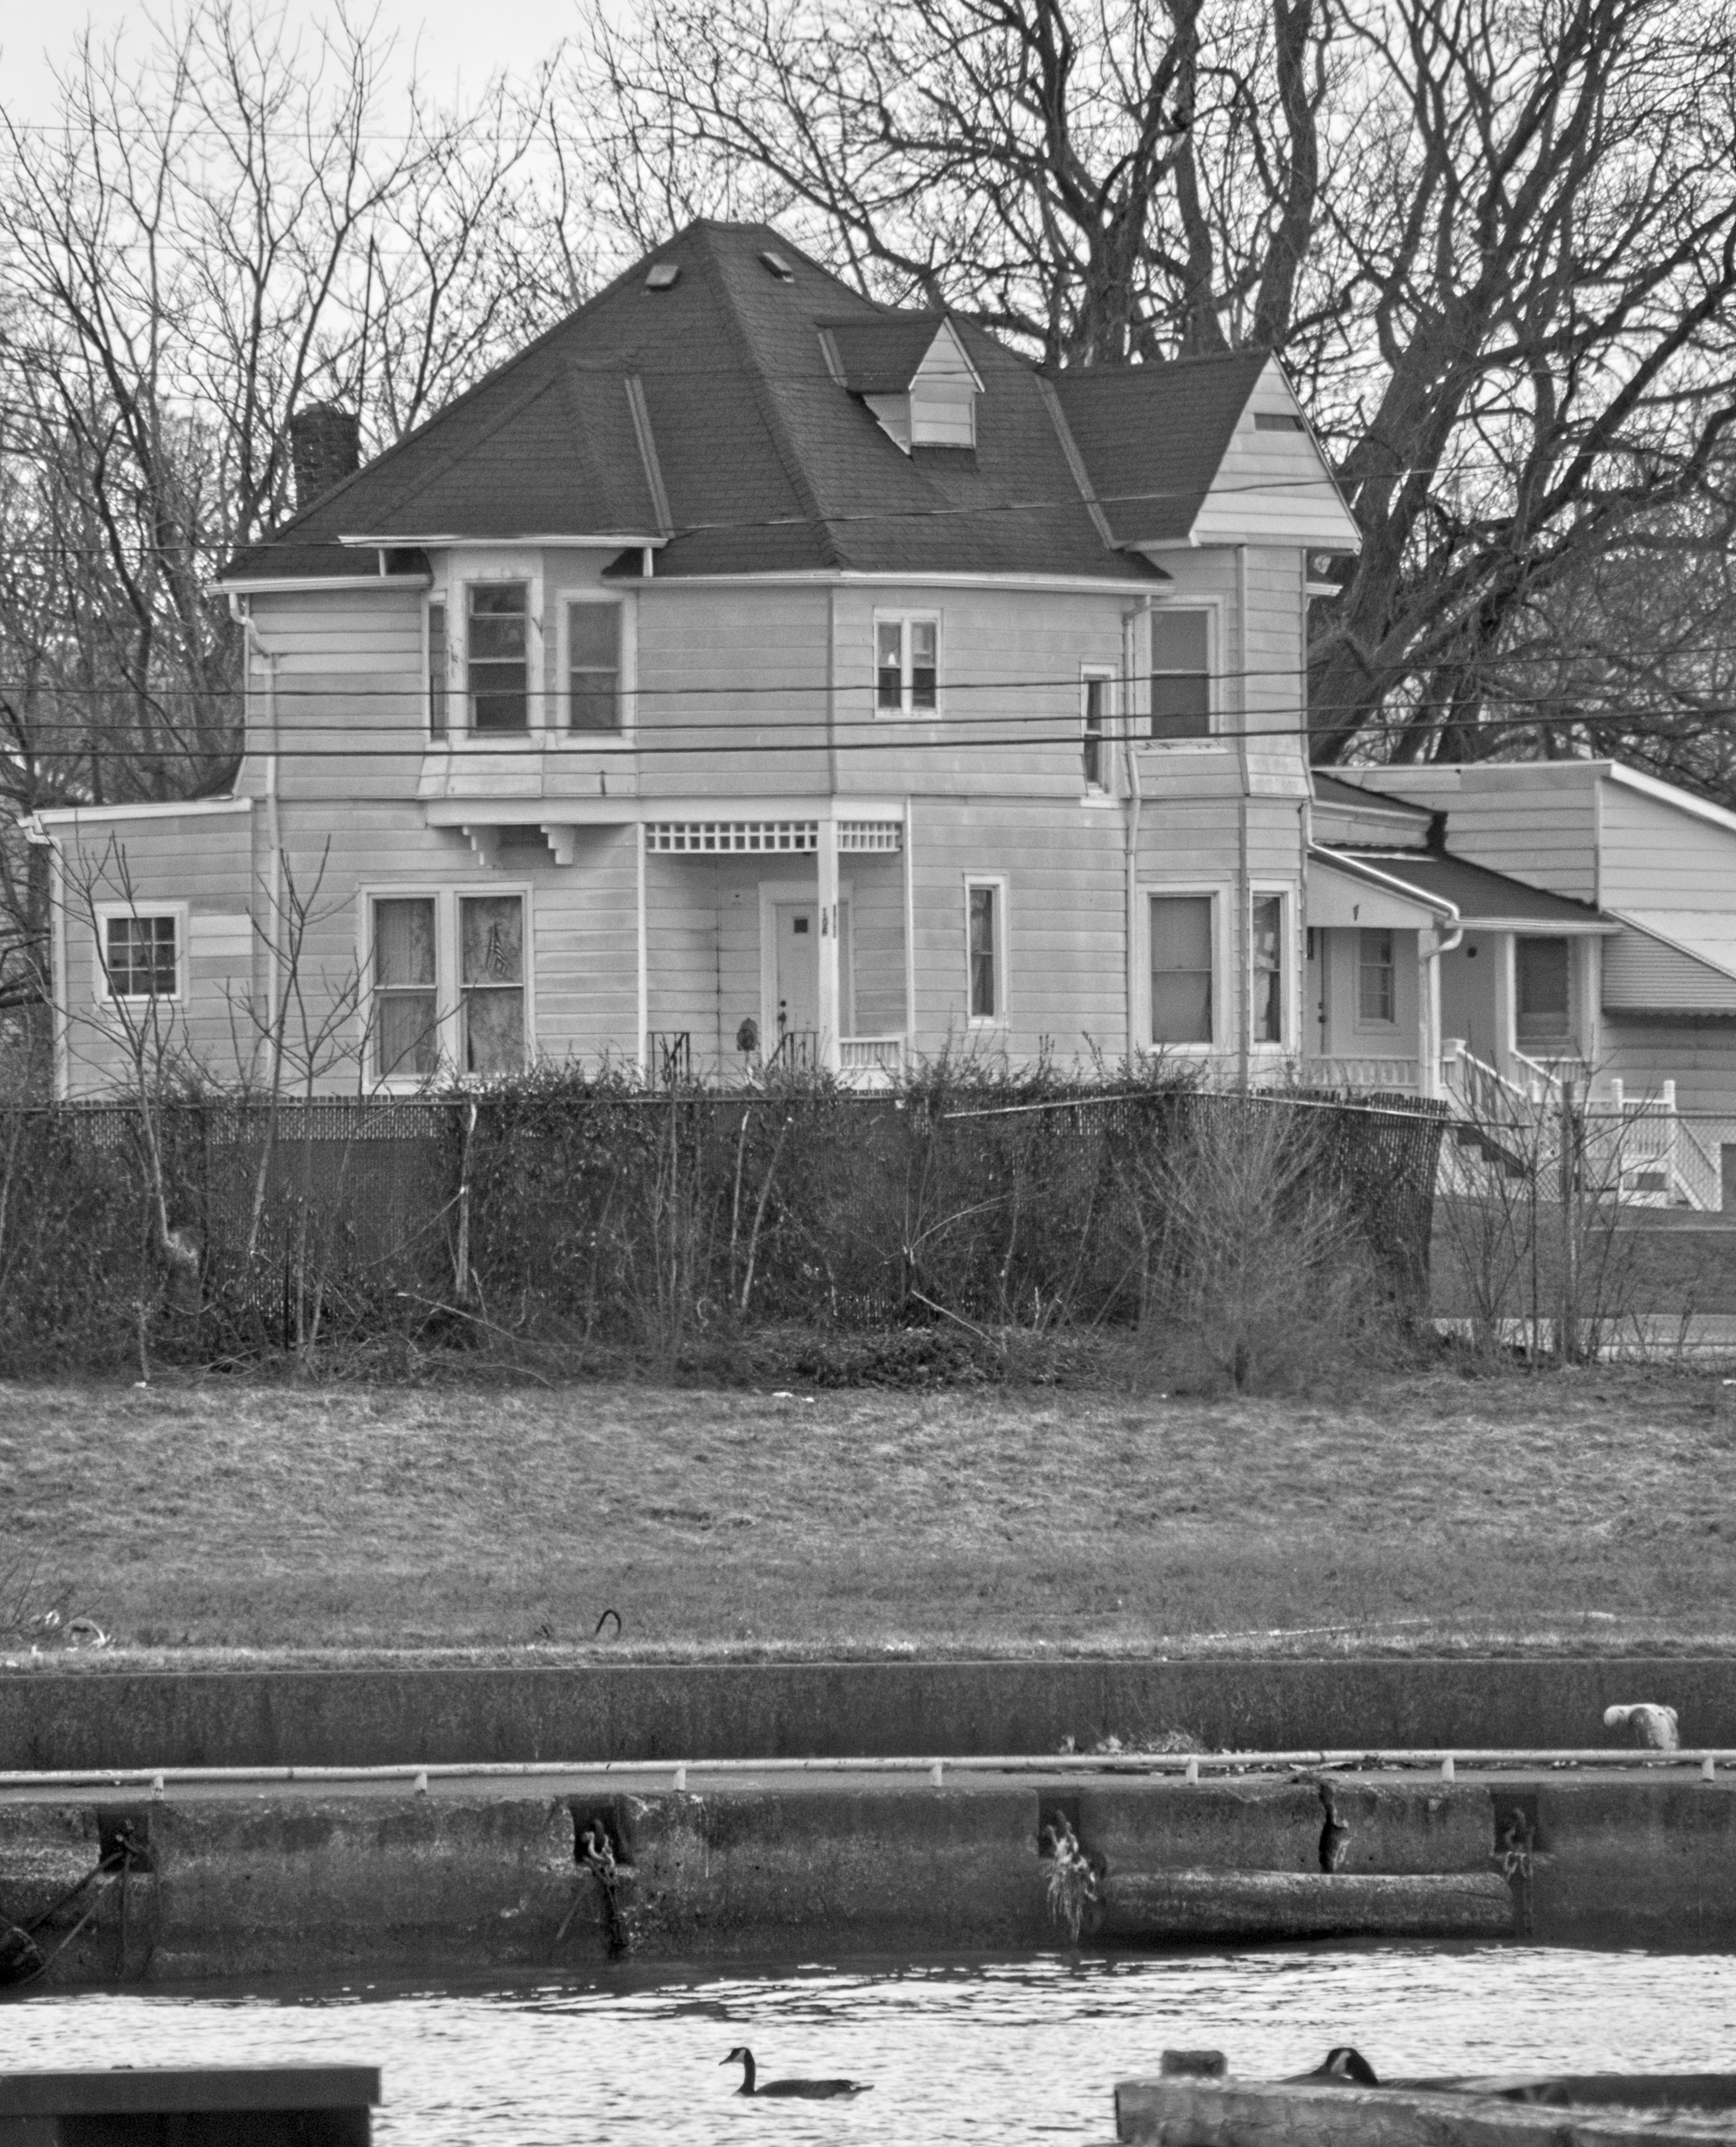 Black and white photo of the oldest house in Lorain overlooking the Black River. Pier and river in the foreground.